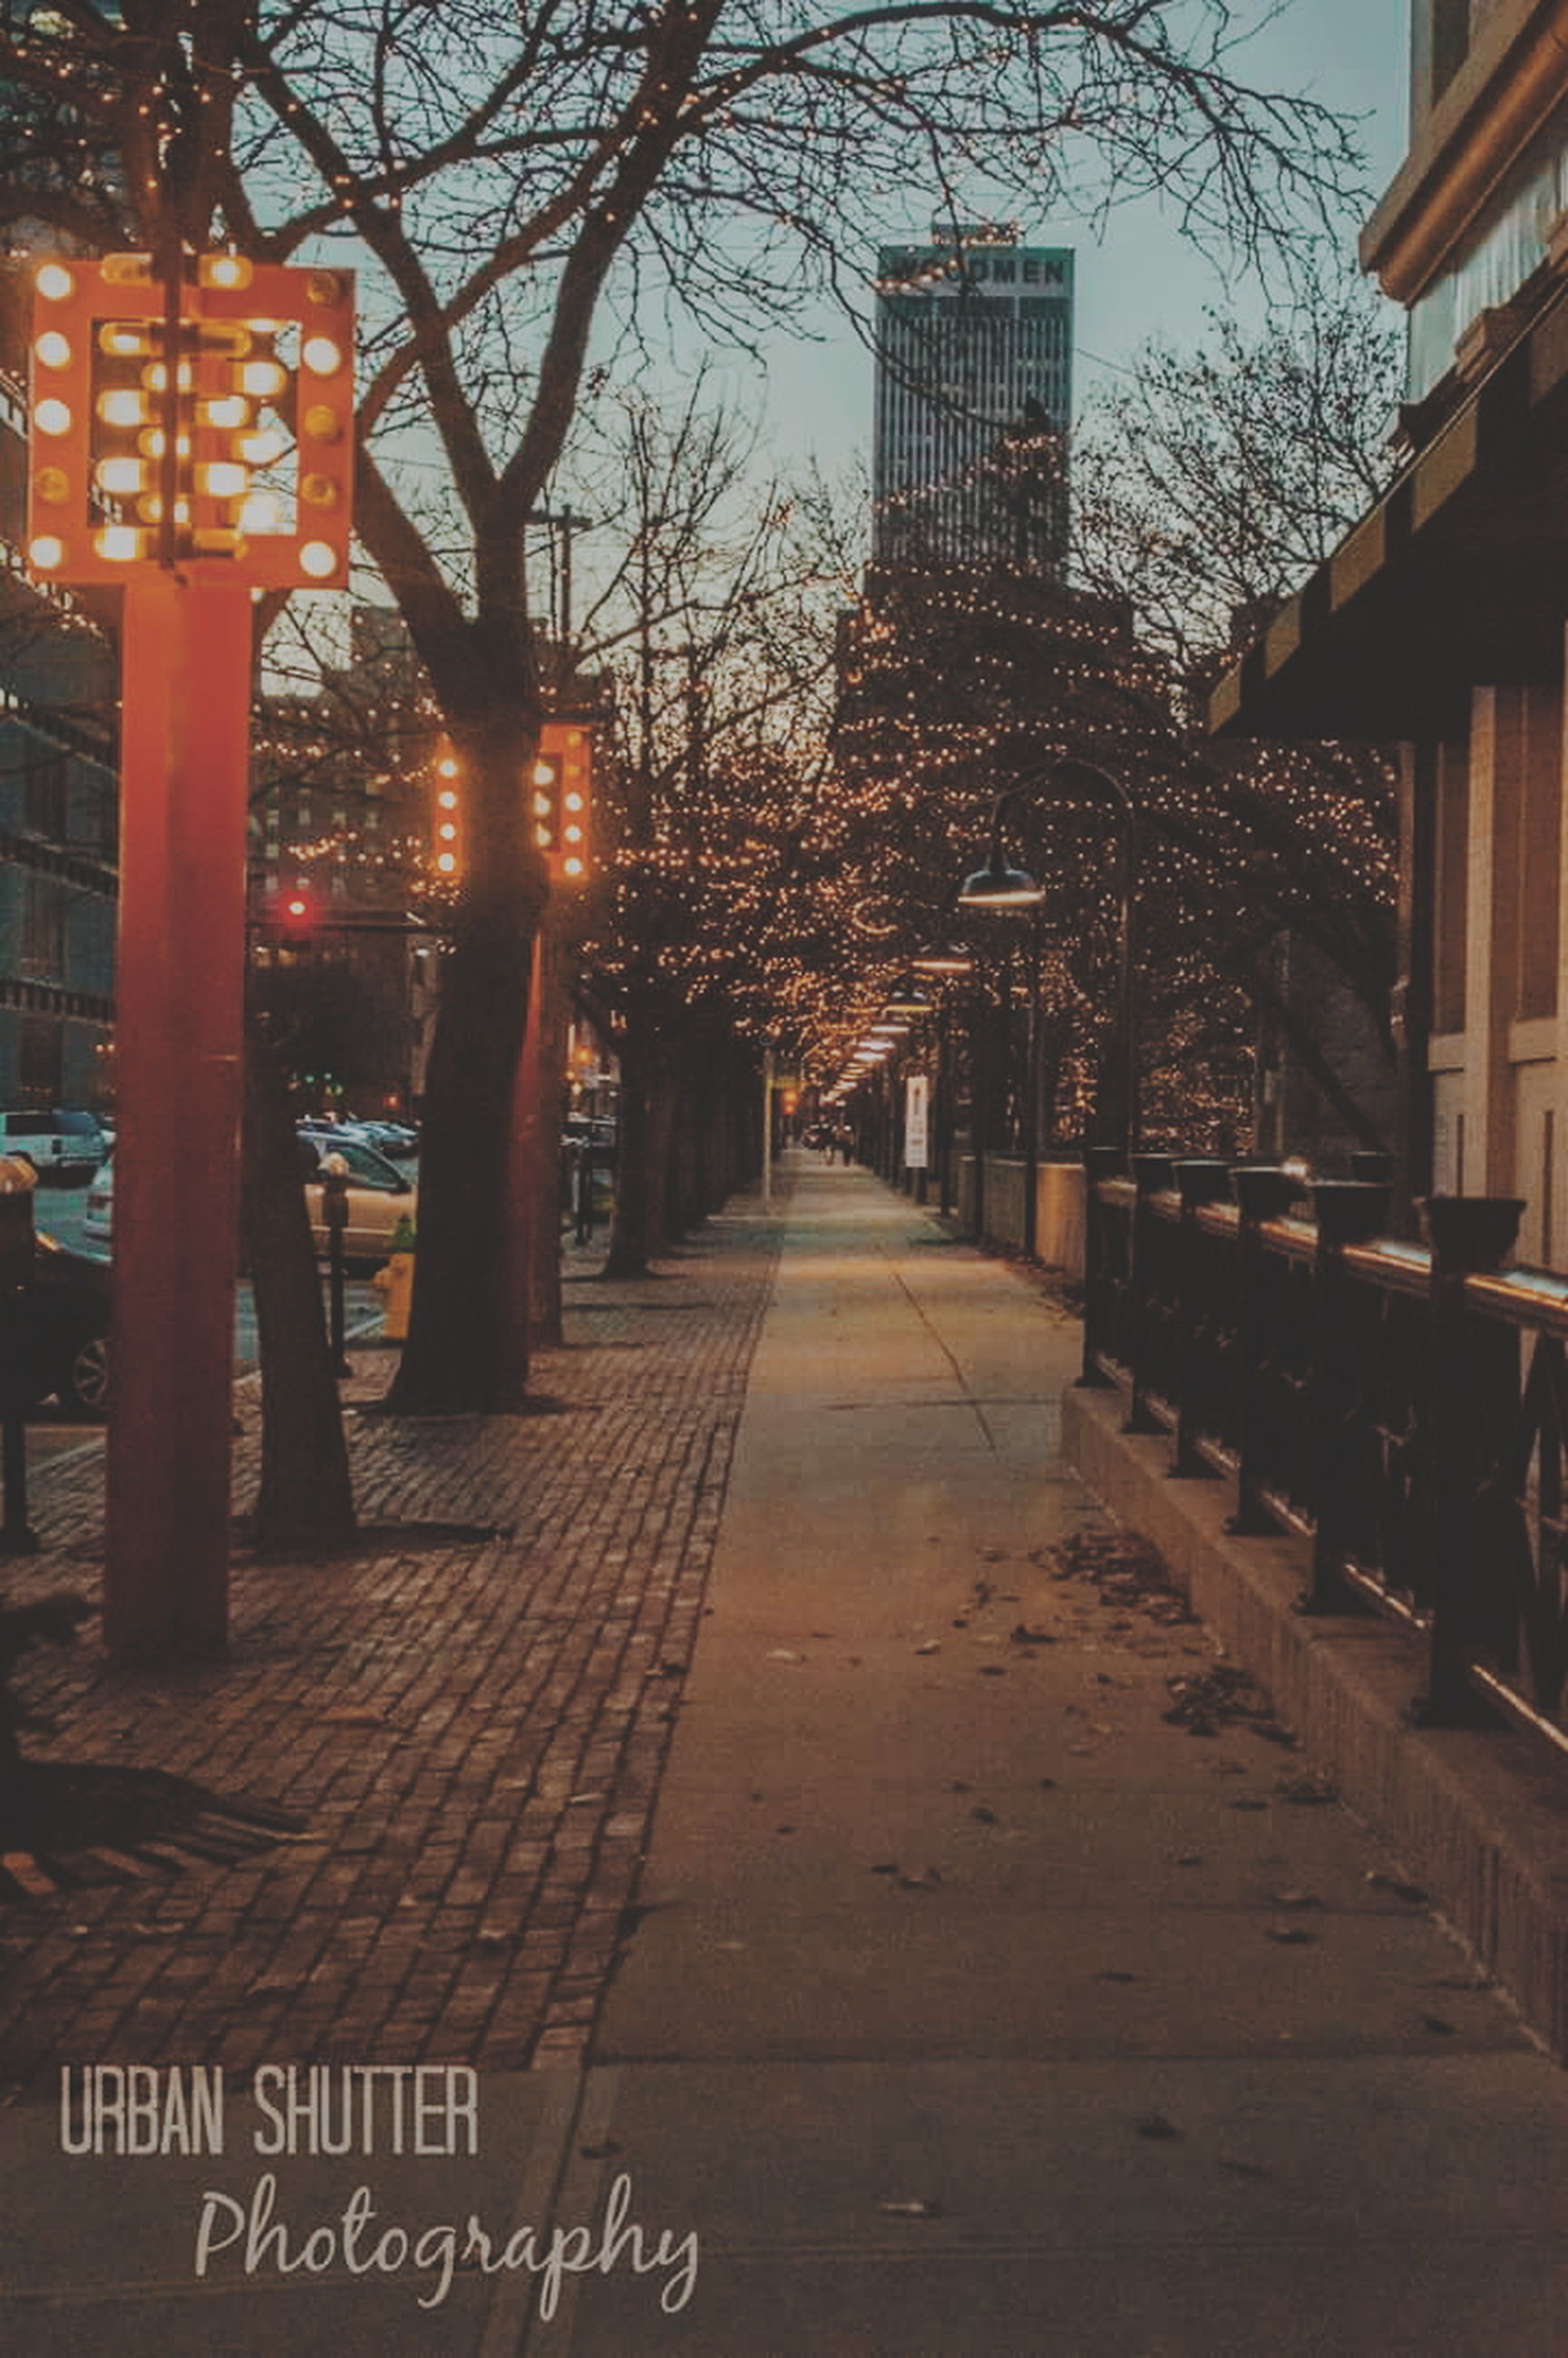 architecture, built structure, building exterior, tree, illuminated, the way forward, city, bare tree, text, outdoors, night, sunlight, street light, no people, lighting equipment, travel destinations, sunset, building, sky, diminishing perspective